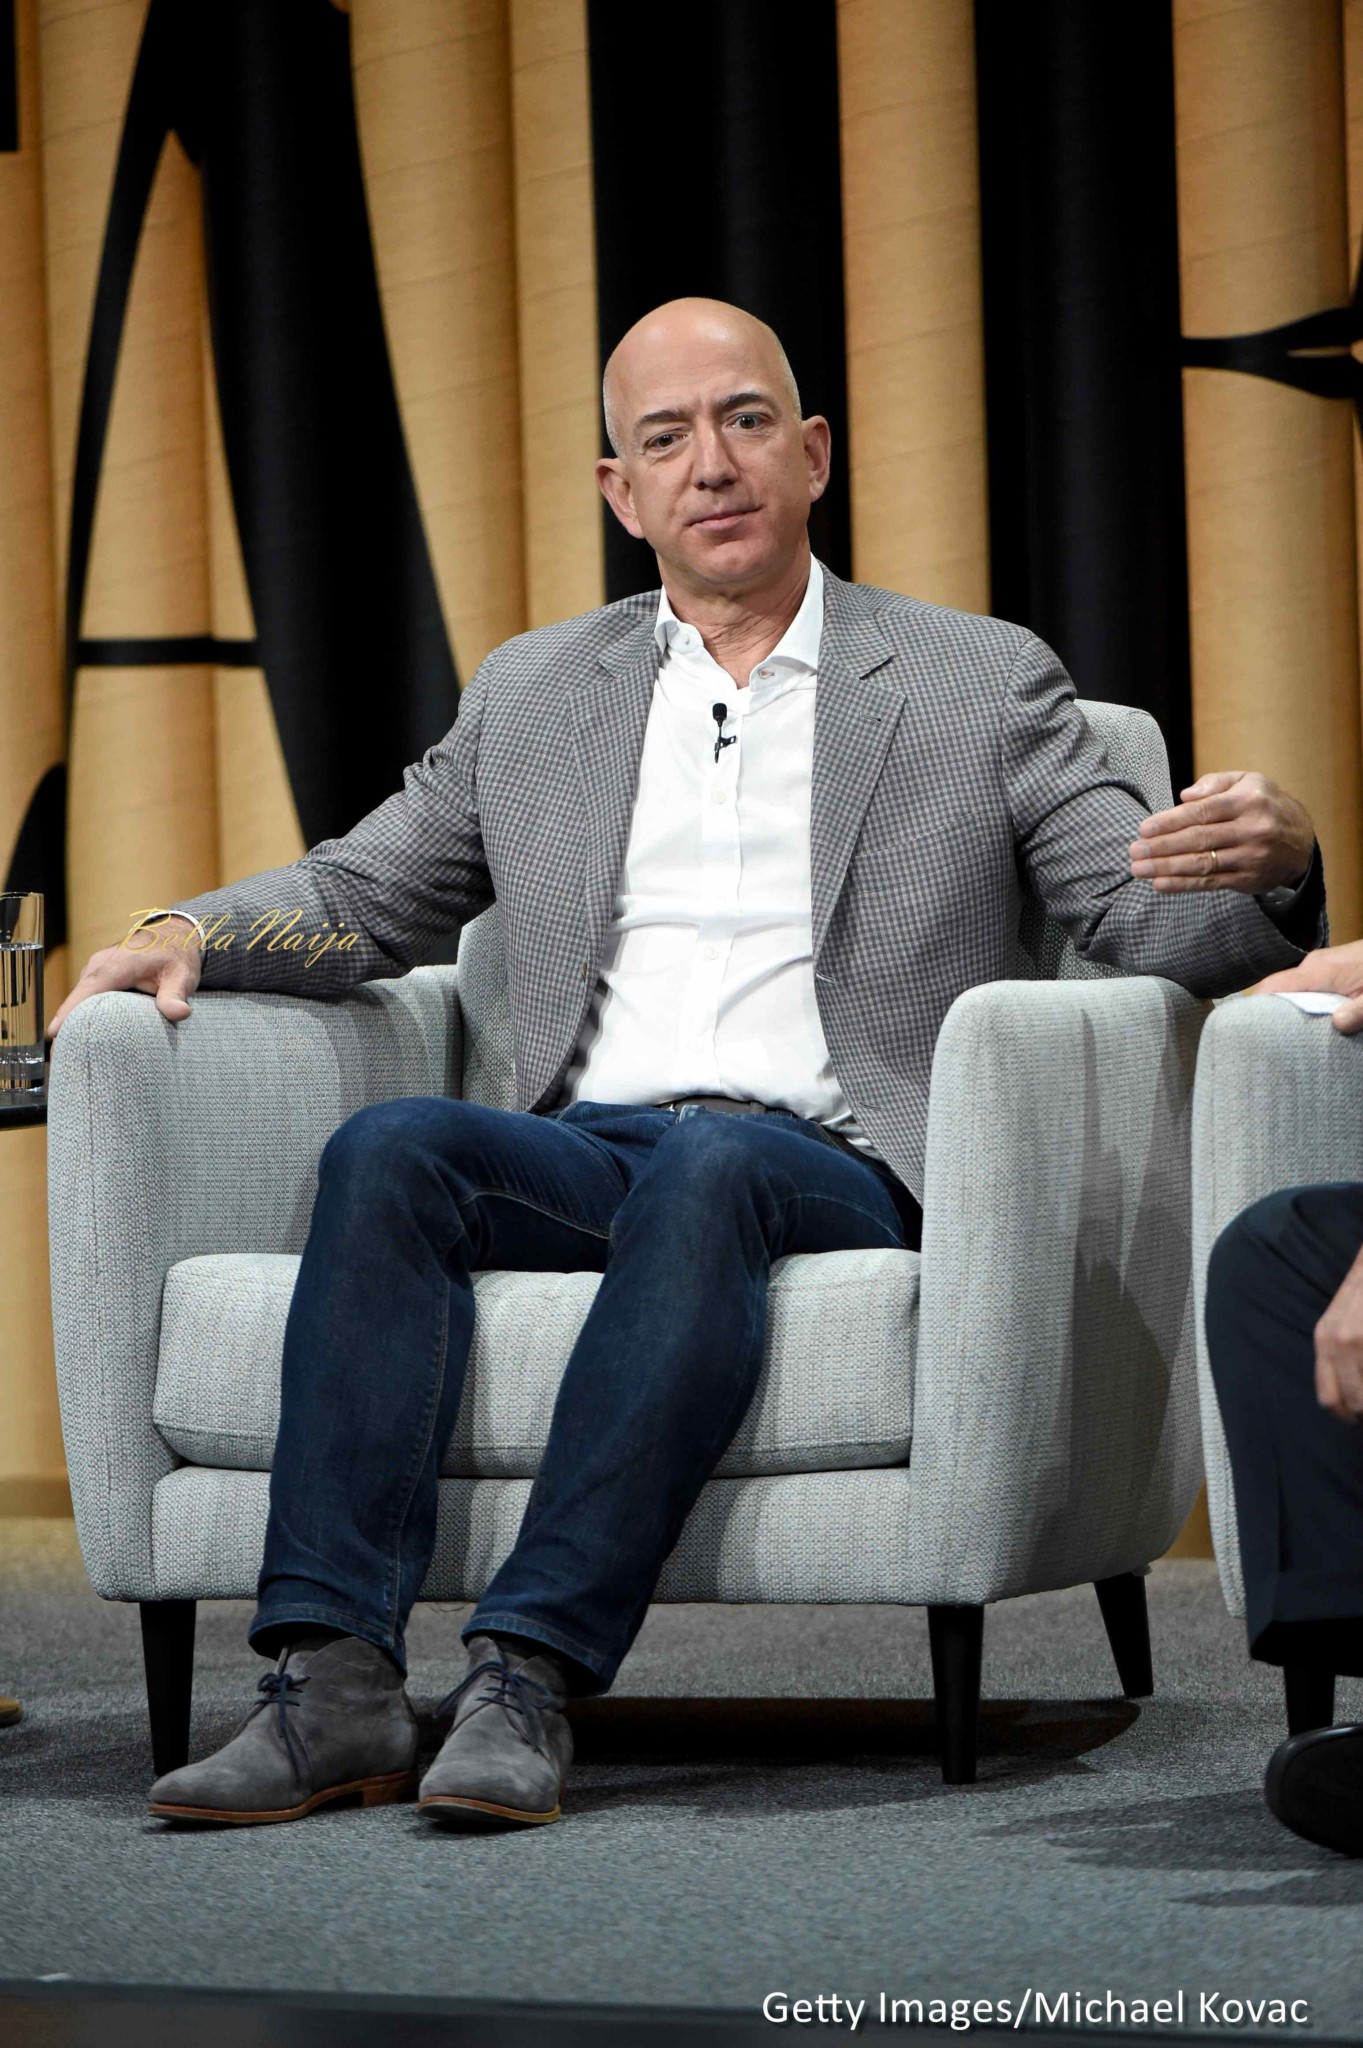 jeff bezos - photo #26